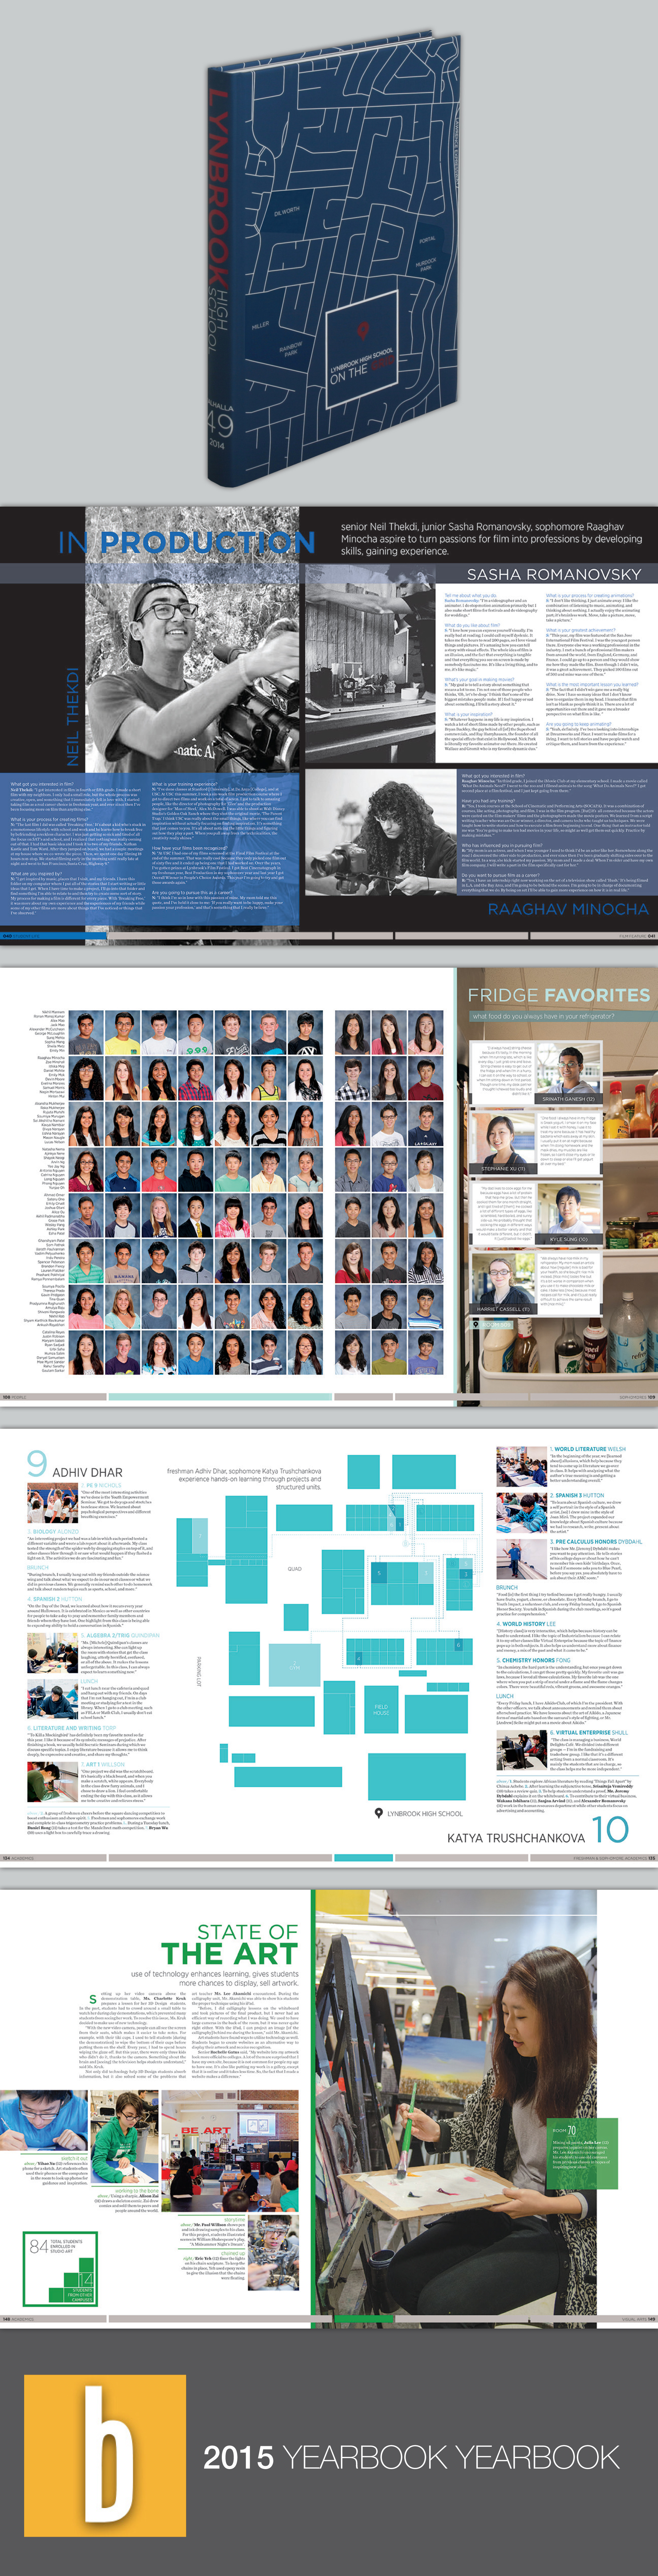 Valhalla Lynbrook High School San Jose California Yearbook Layouts Yearbook Themes Yearbook Design [ 7998 x 2044 Pixel ]